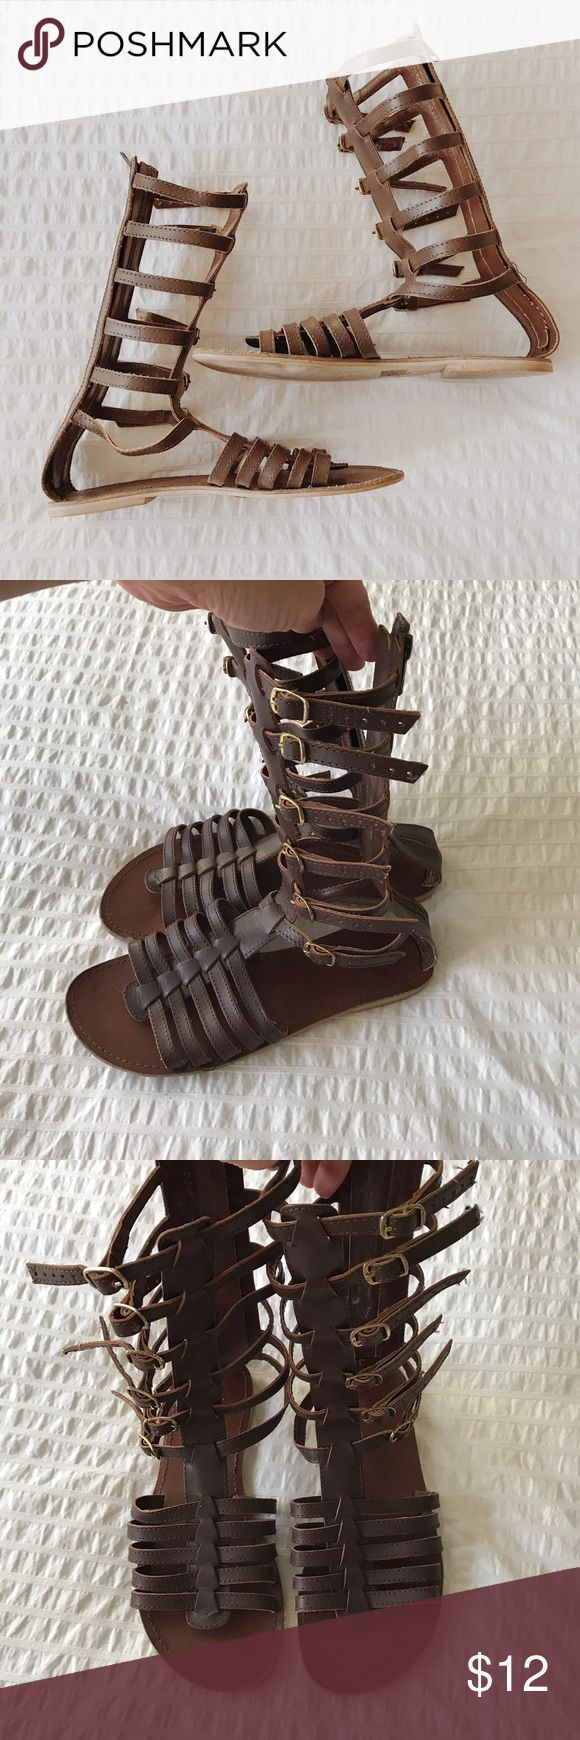 Gladiator Sandals Cute Gladiators from Urban Outfitters. Super cute paired with a black dress in the summer or with shorts! Adjustable straps Urban Outfitters Shoes Sandals